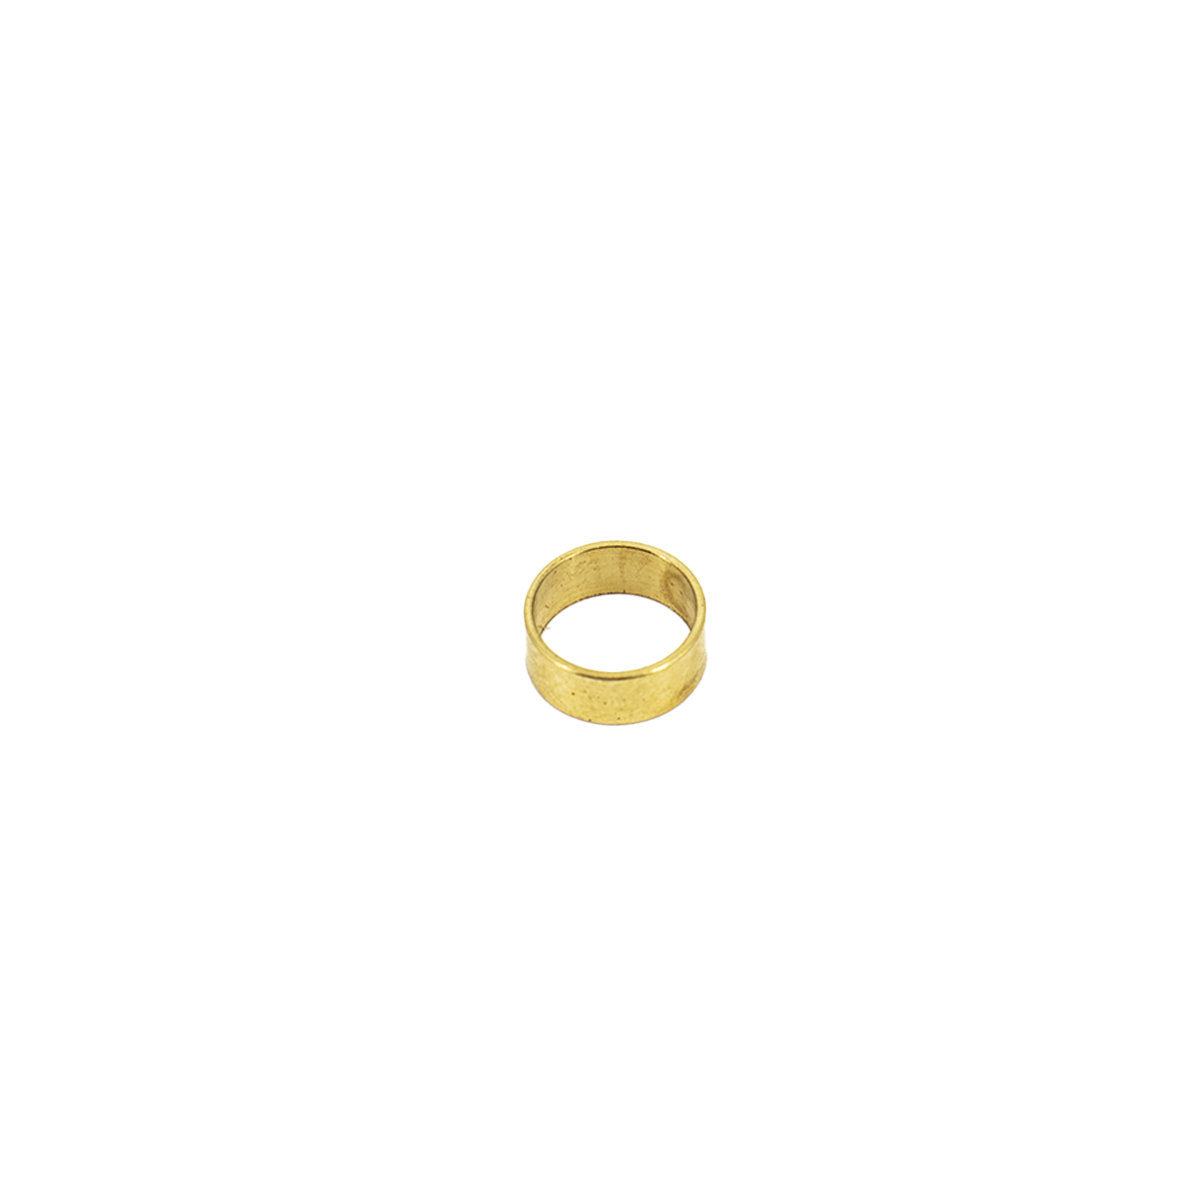 View larger image of Rifle Parts - Battle Machine MOD Barrel Brass Ring